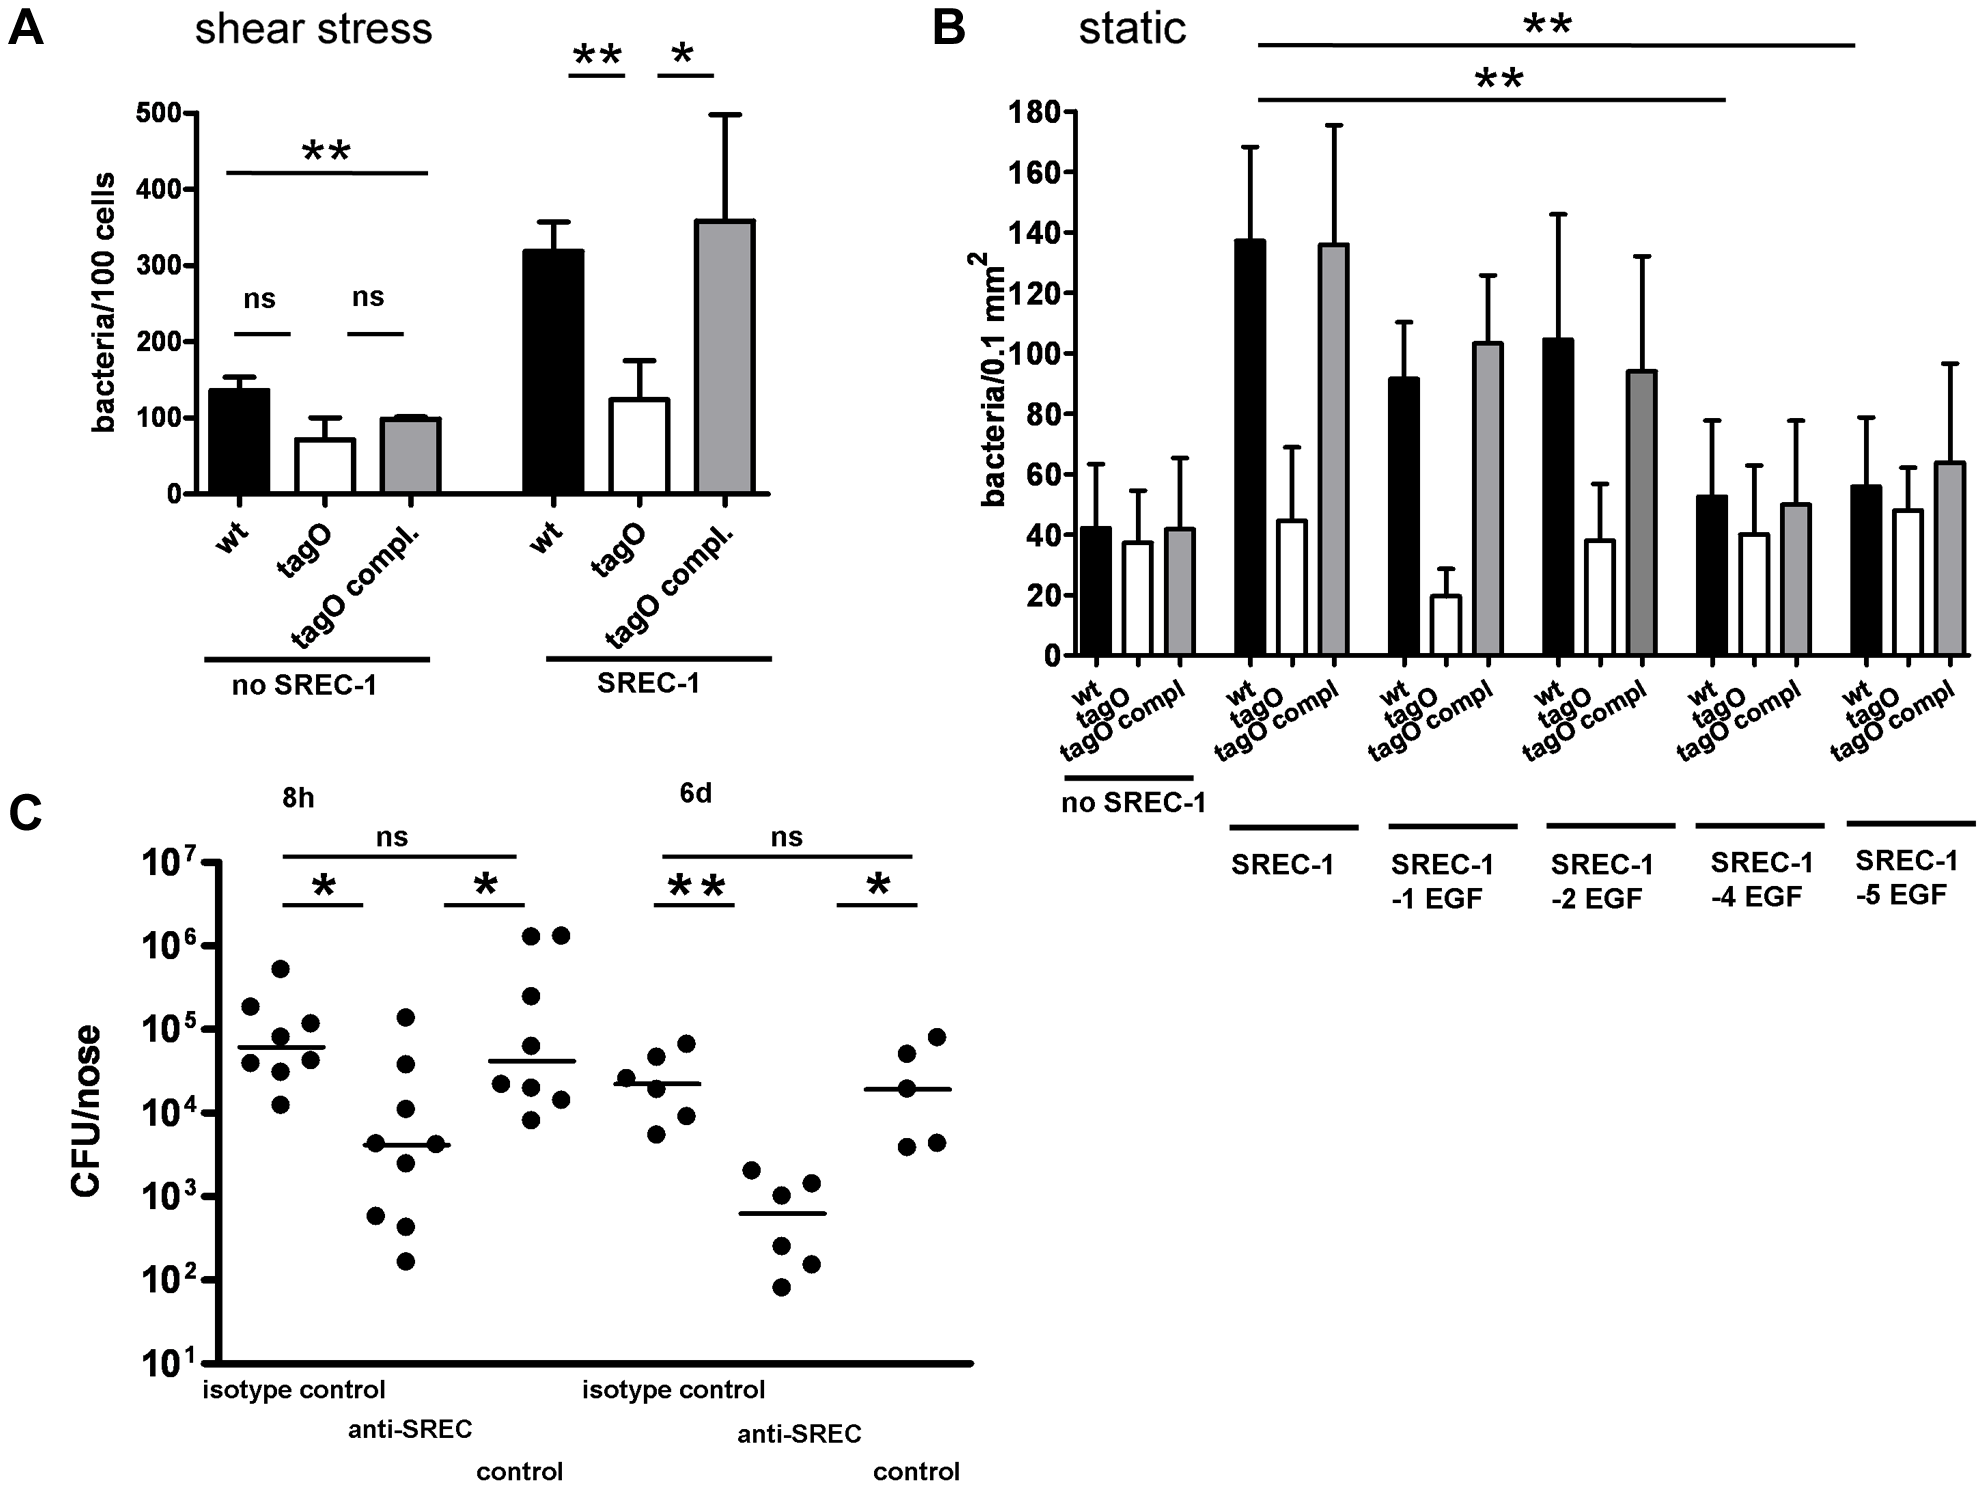 Impact of SREC-I on adhesion of <i>S. aureus</i> to CHO epithelial cells and impact of SREC-I on the early phases of nasal colonization in the cotton rat model.